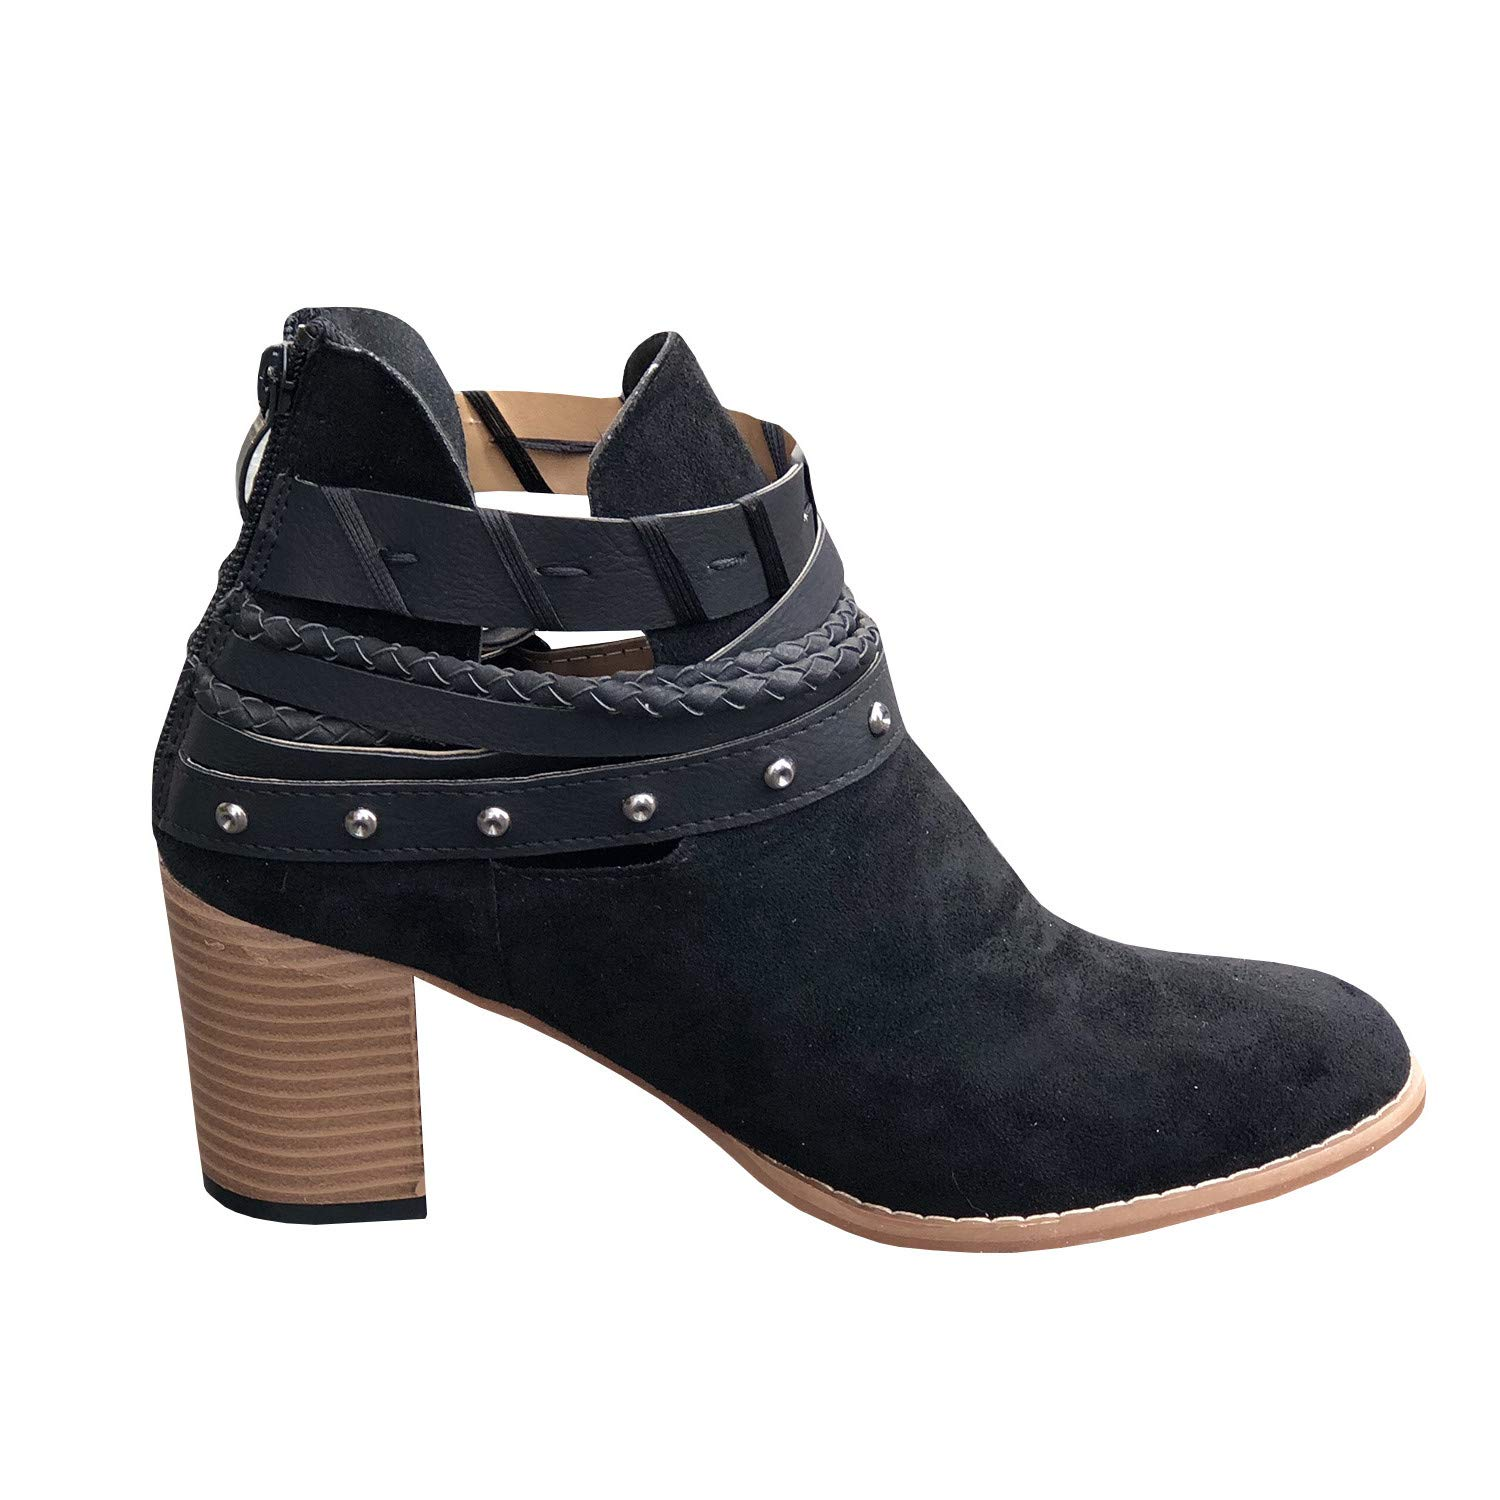 aceac09bbcdb4 Amazon.com: Womens Cutout Buckle Strappy Ankle Booties Chunky High Stacked  Heel Back Zipper Ankle Boots: Clothing